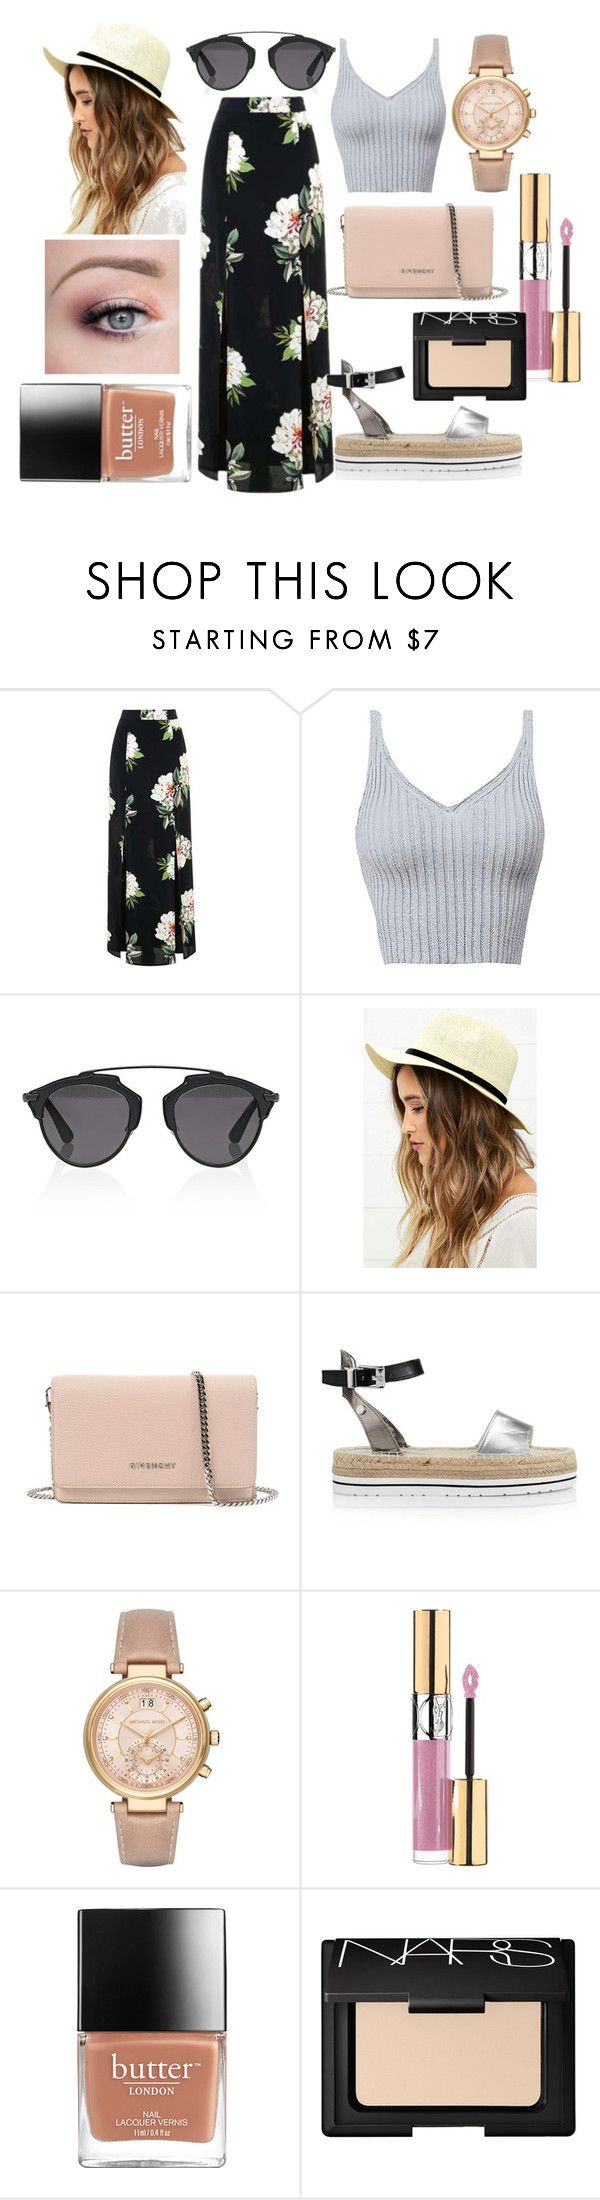 """""""Untitled #67"""" by rebecca-hz on Polyvore featuring Topshop, Christian Dior, LULUS, Givenchy, Love Moschino, Michael Kors, Yves Saint Laurent and NARS Cosmetics"""